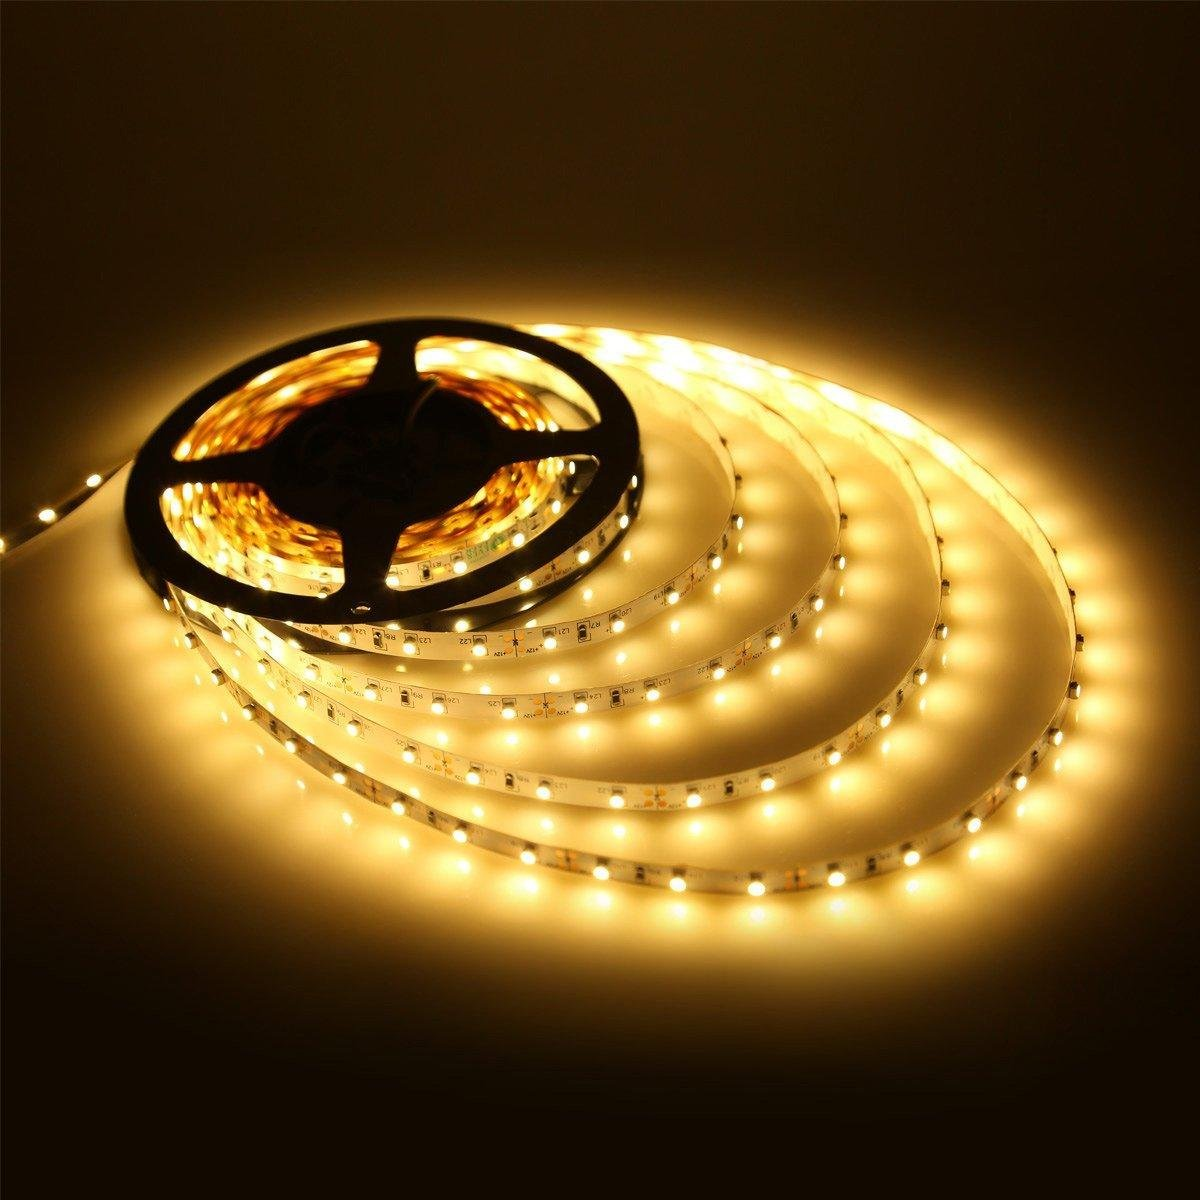 Buy waterproof smd 2835 led strip lights 5 meter dc 12v adapter buy waterproof smd 2835 led strip lights 5 meter dc 12v adapter led dimmer controller warm white online at low prices in india amazon mozeypictures Choice Image